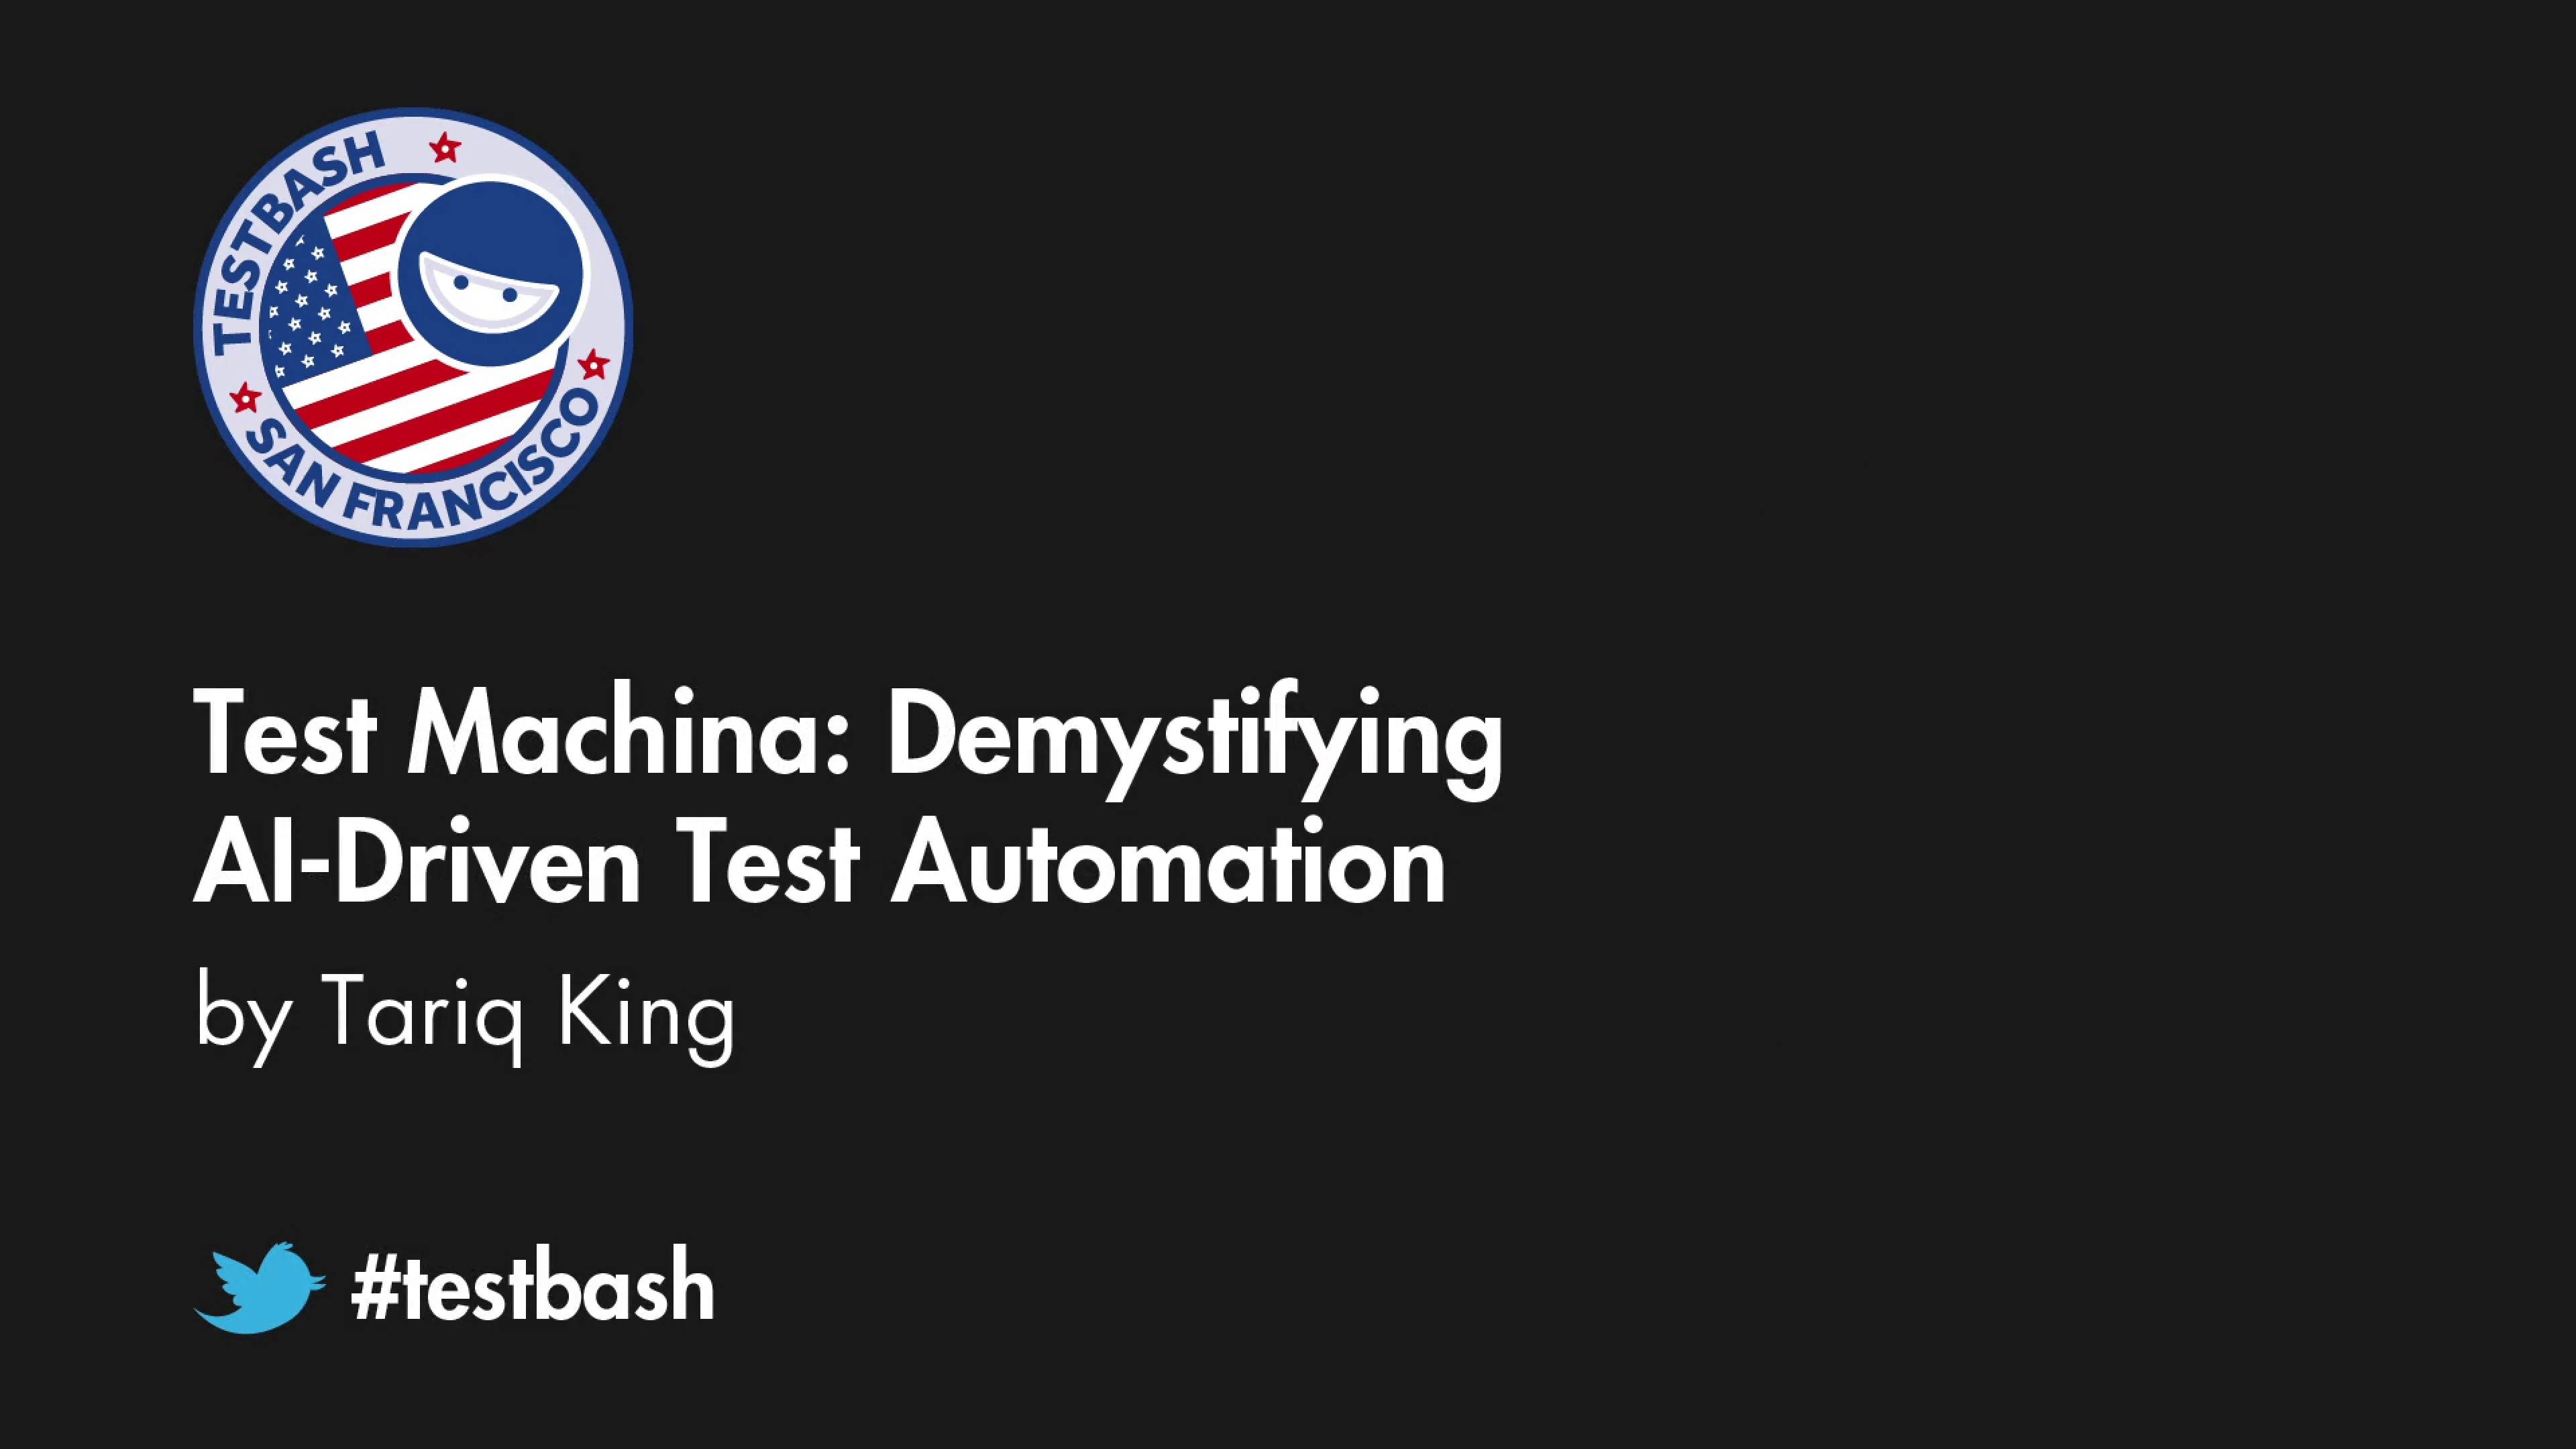 Test Machina: Demystifying AI-Driven Test Automation - Tariq King